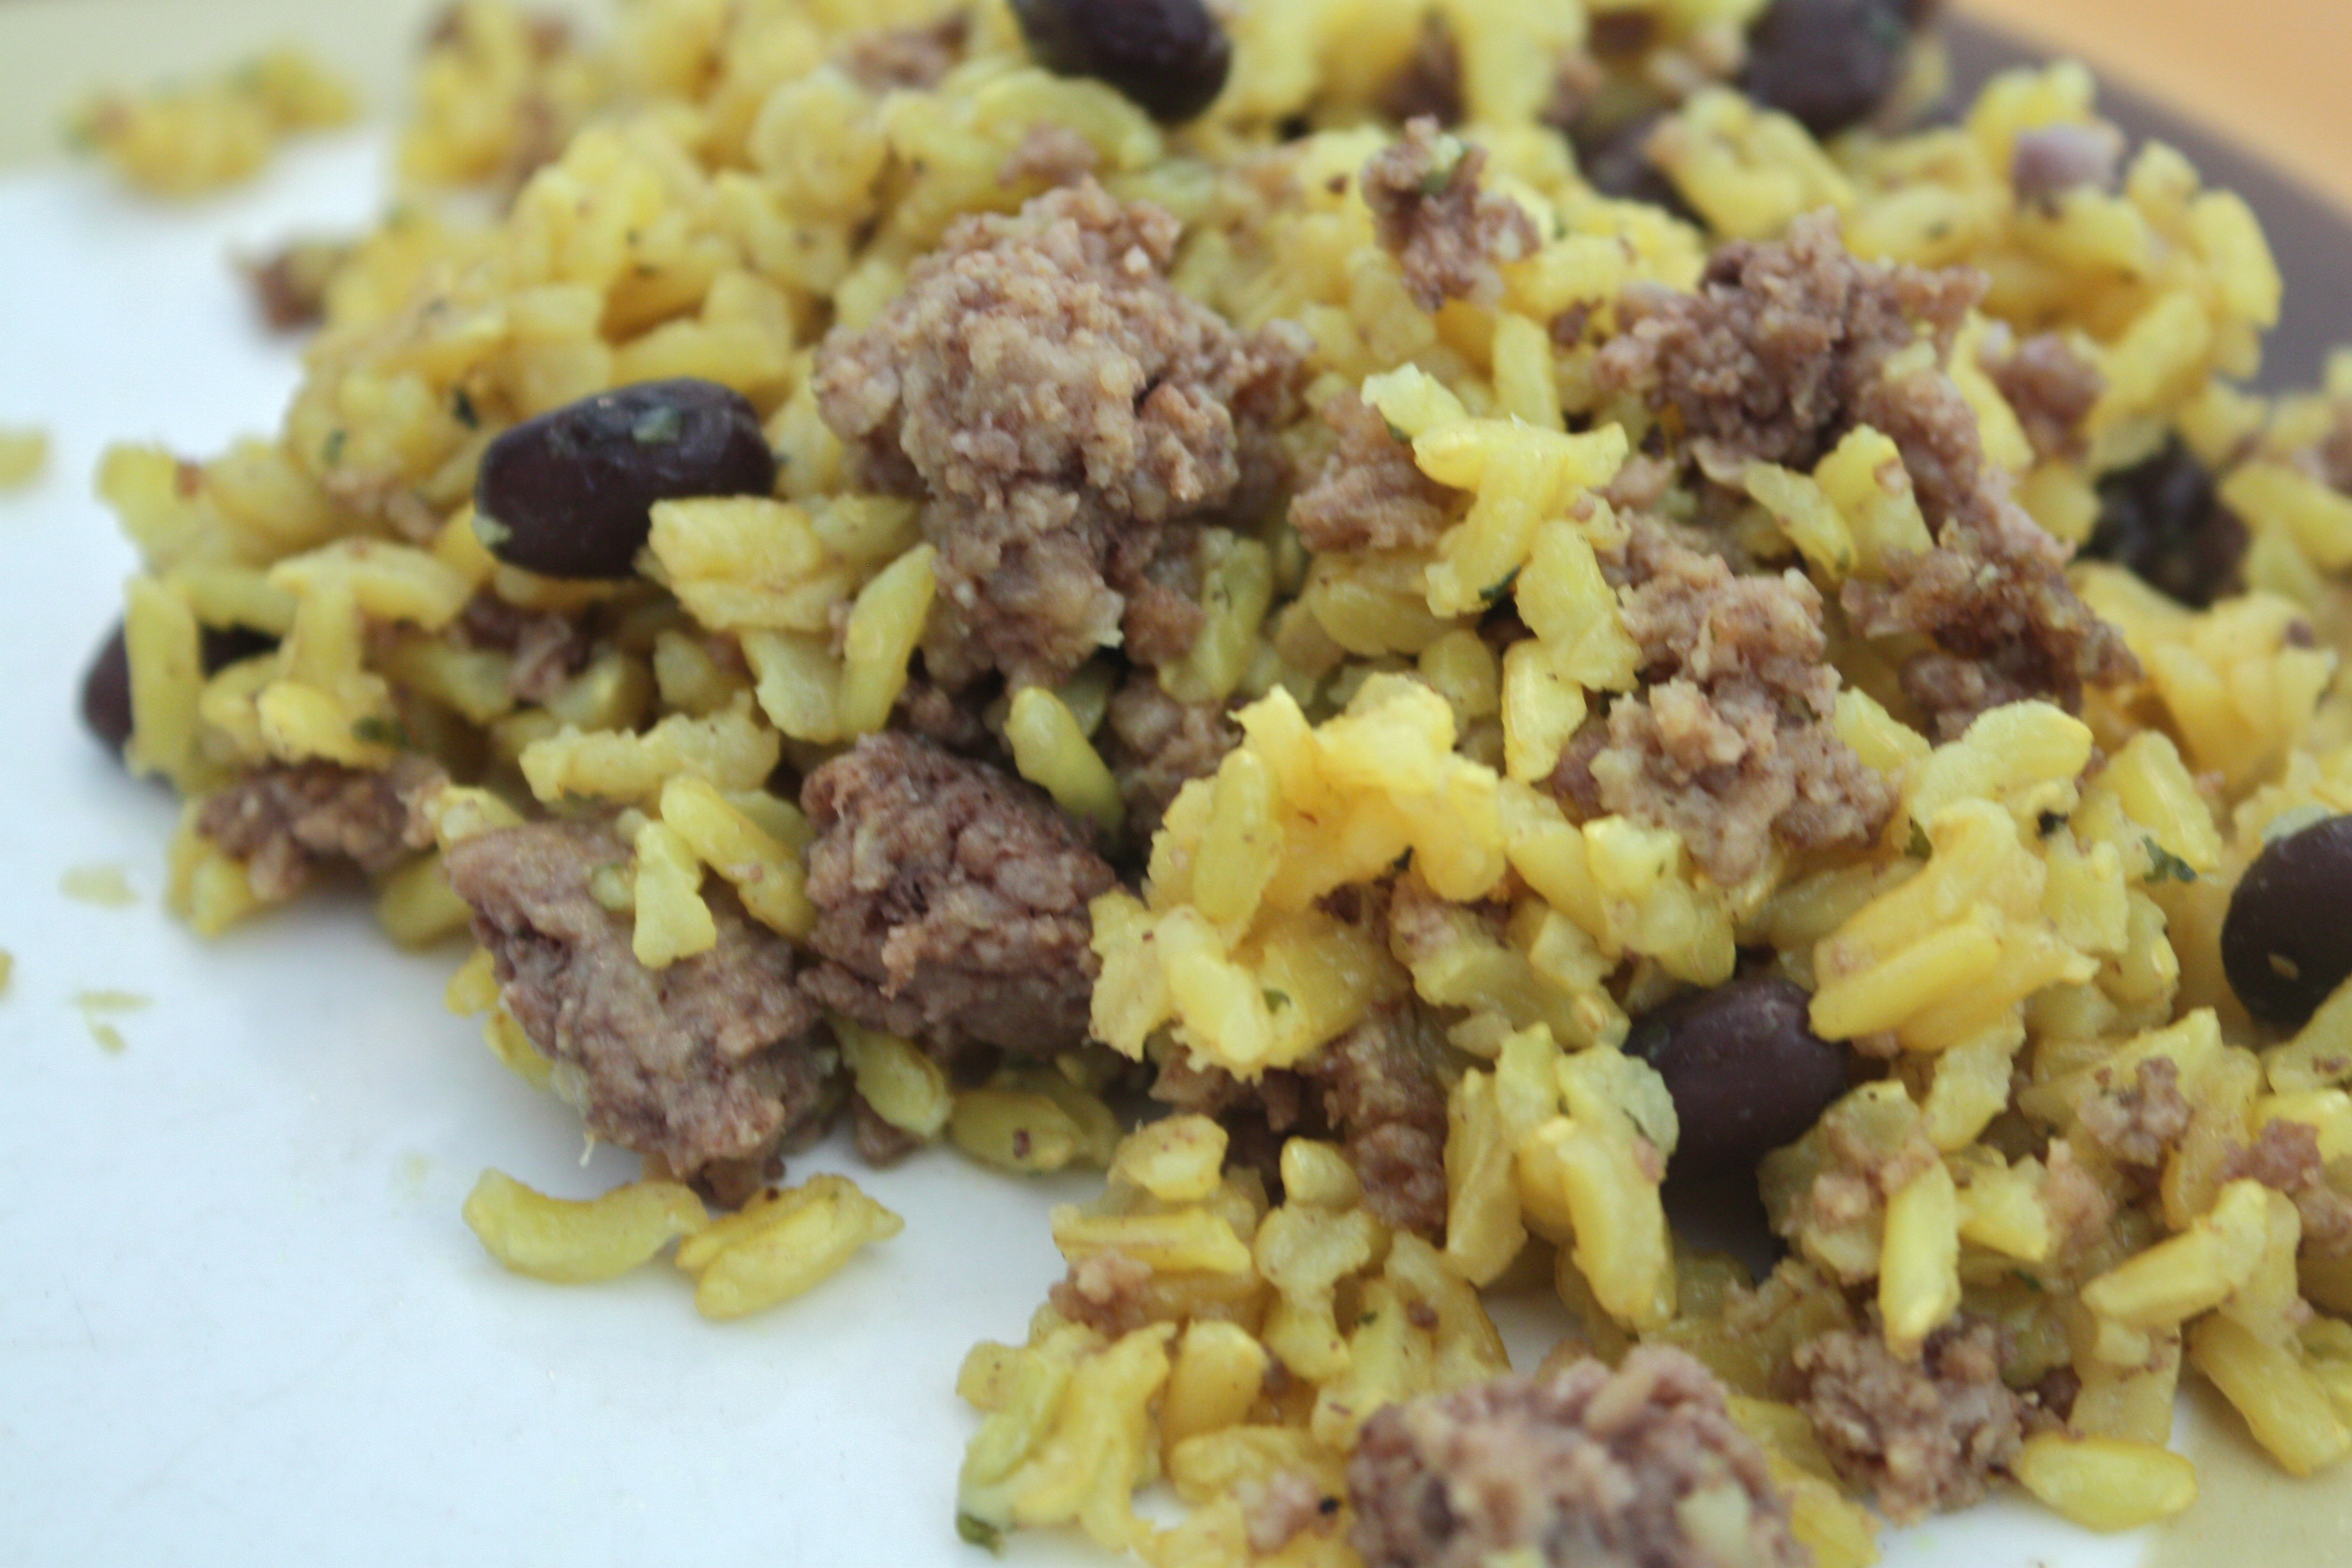 Ground Beef Rice  Ground Beef Rice and Beans Anne Jisca s Healthy Pursuits